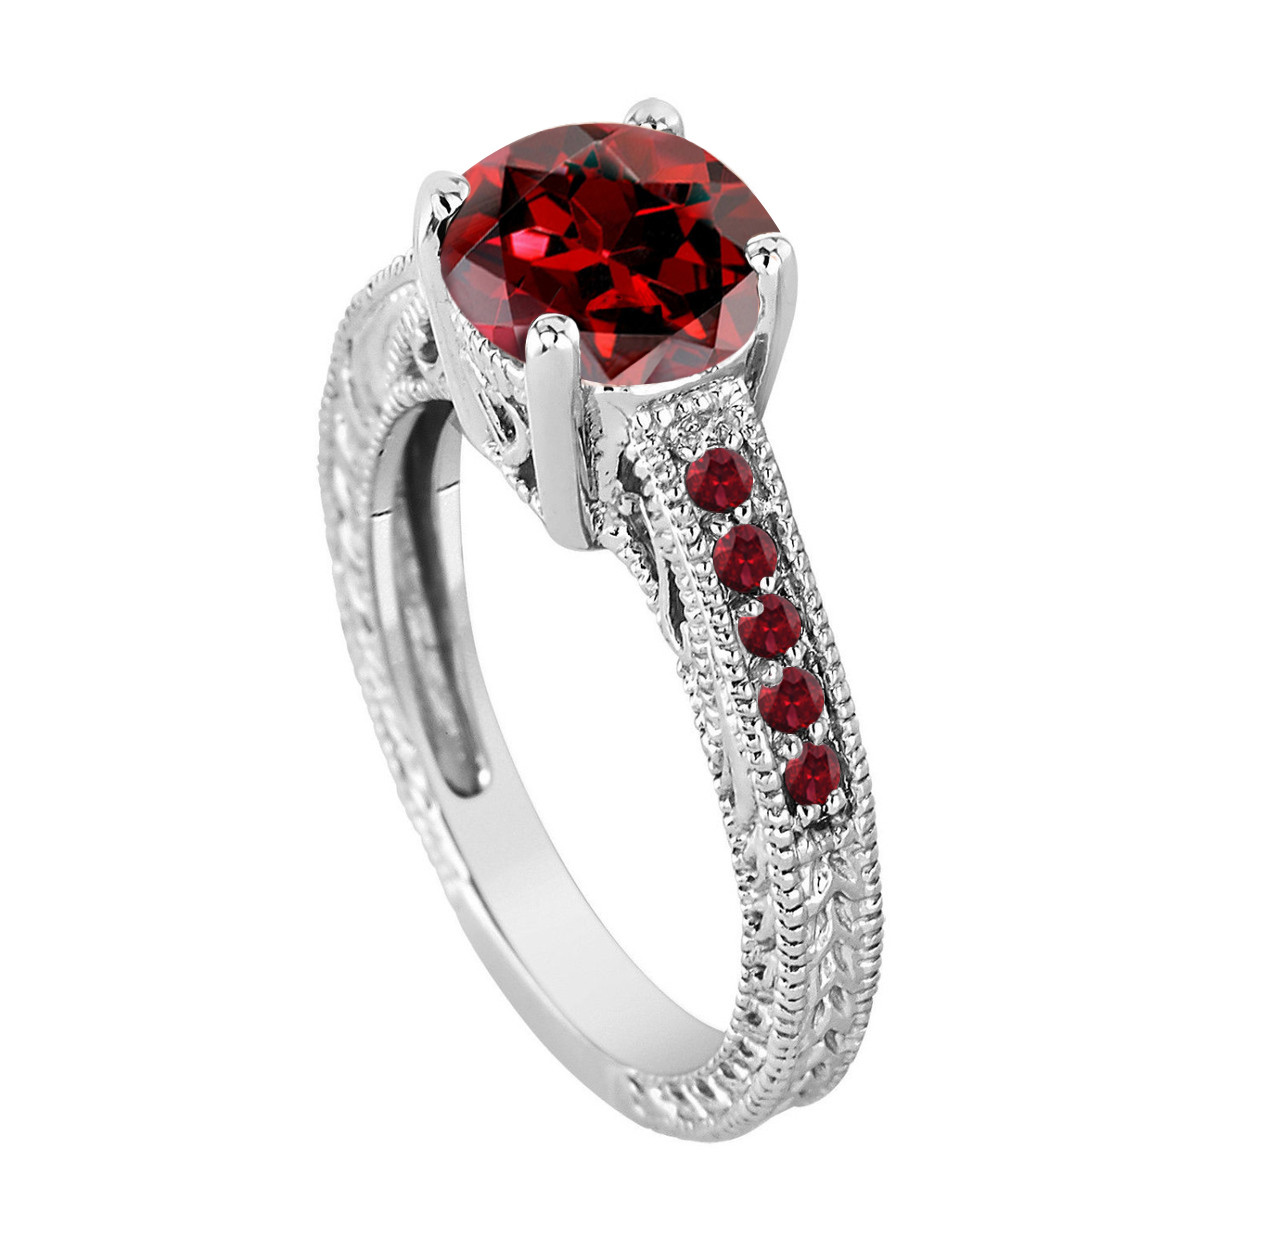 Red Garnet Engagement Ring, Garnet Bridal Ring, Engraved Wedding Ring  Birthstone Ring Unique Vintage 14K White Gold 2 25 Carat Pave Handmade